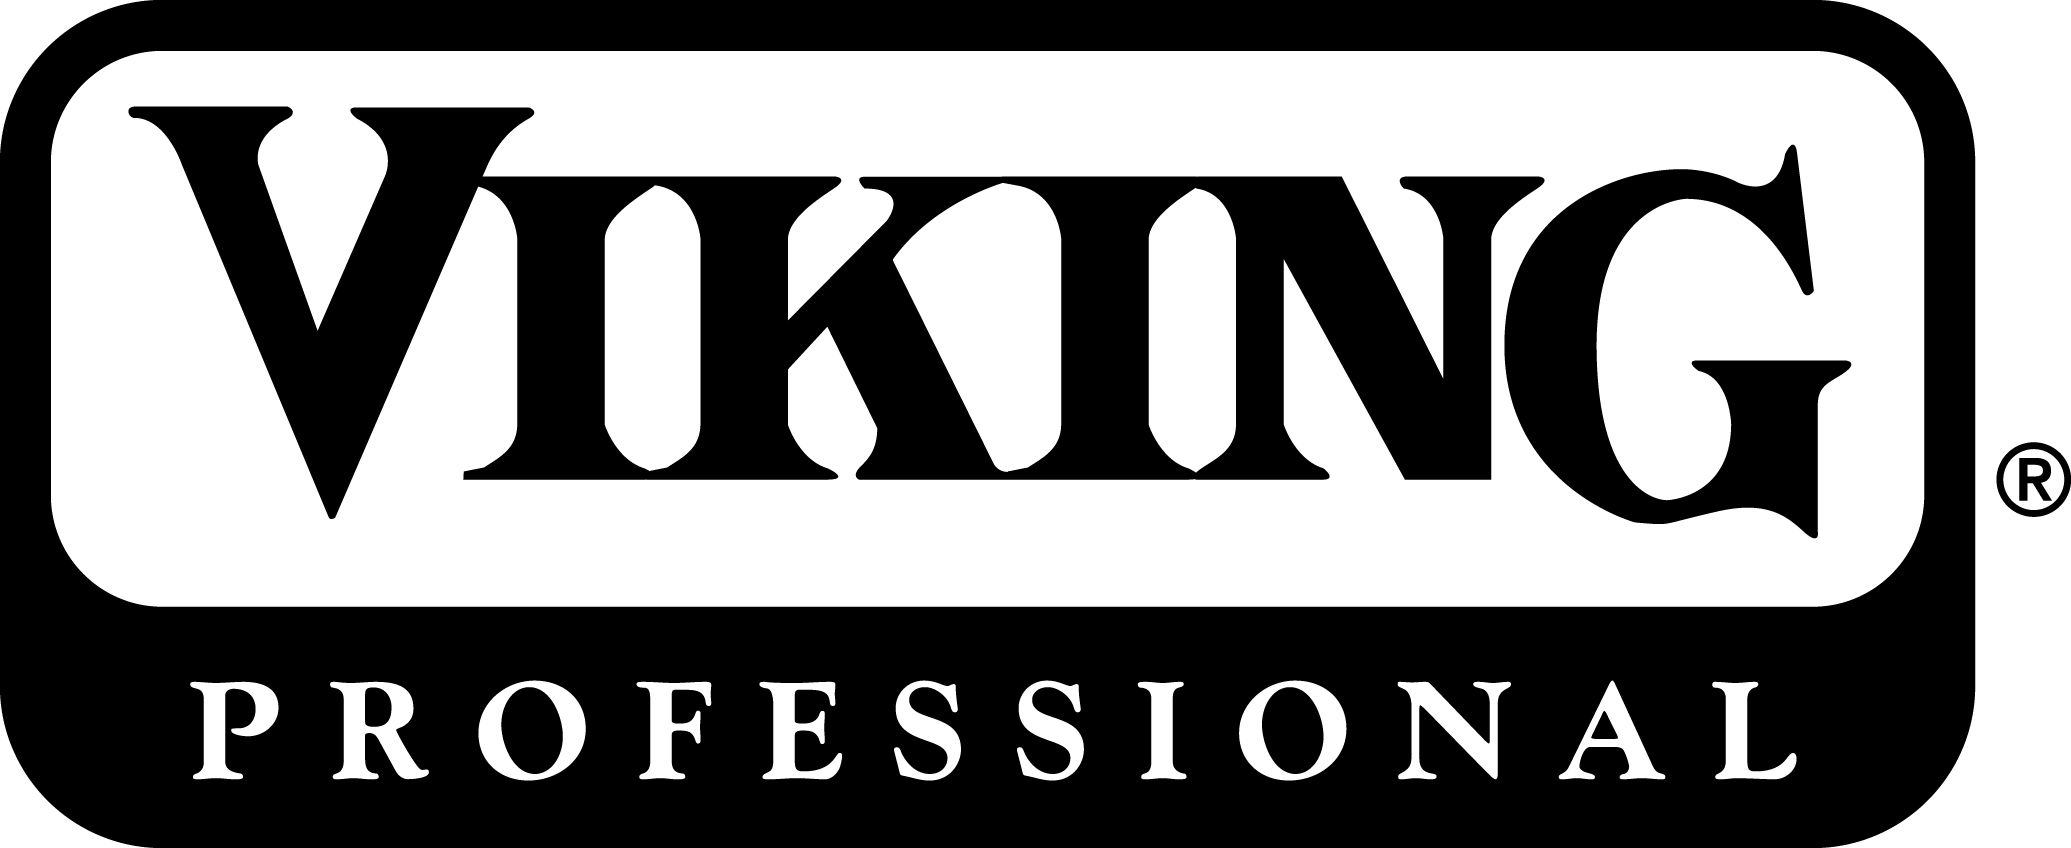 Viking Dryer Specialist, KitchenAid Dryer Repair